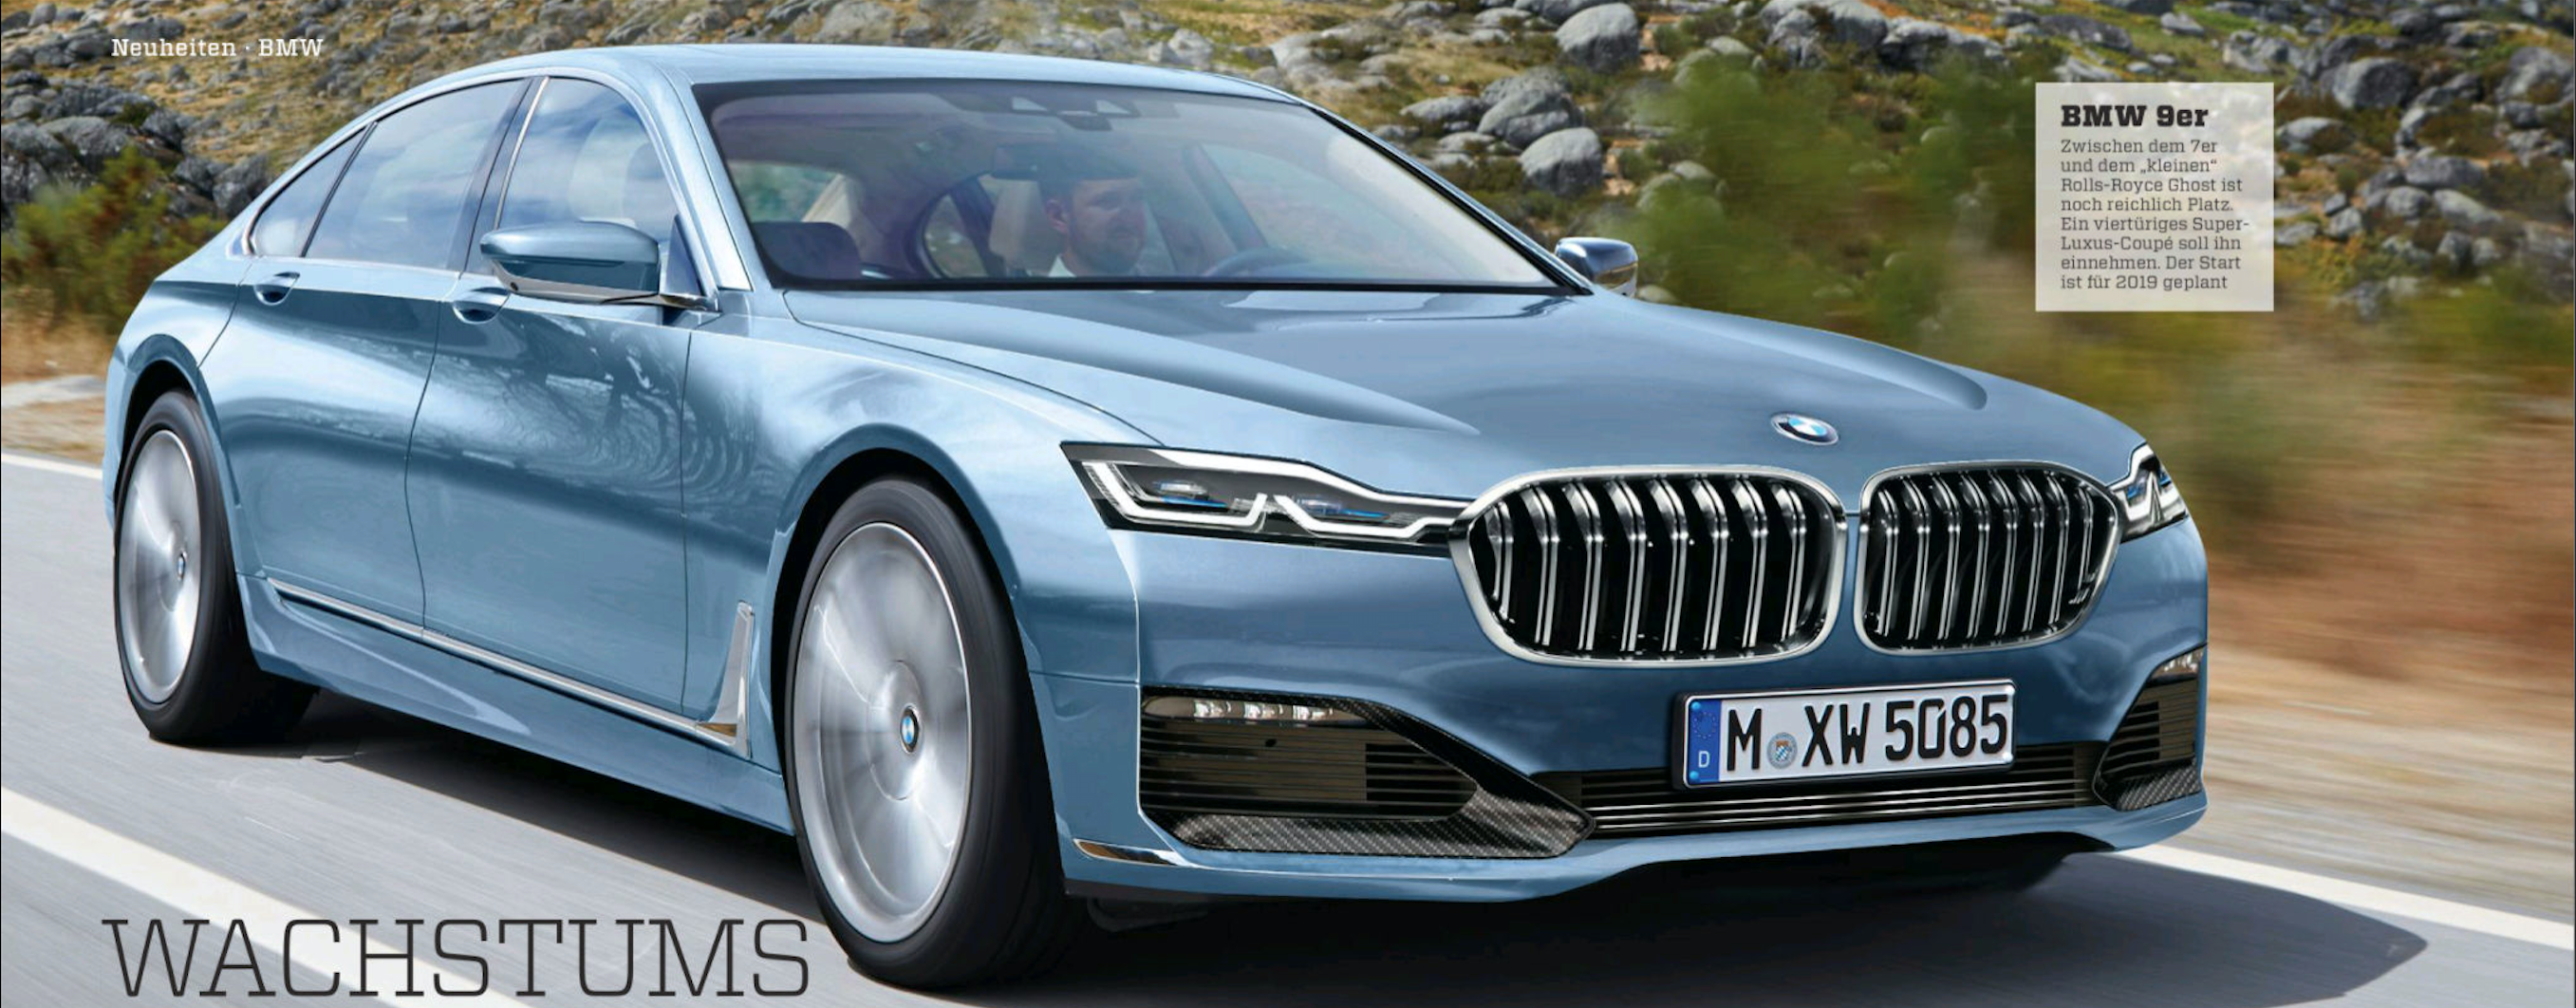 Head Of R D Says No Bmw 9 Series In The Future Bmw Luxury Cars Coupe